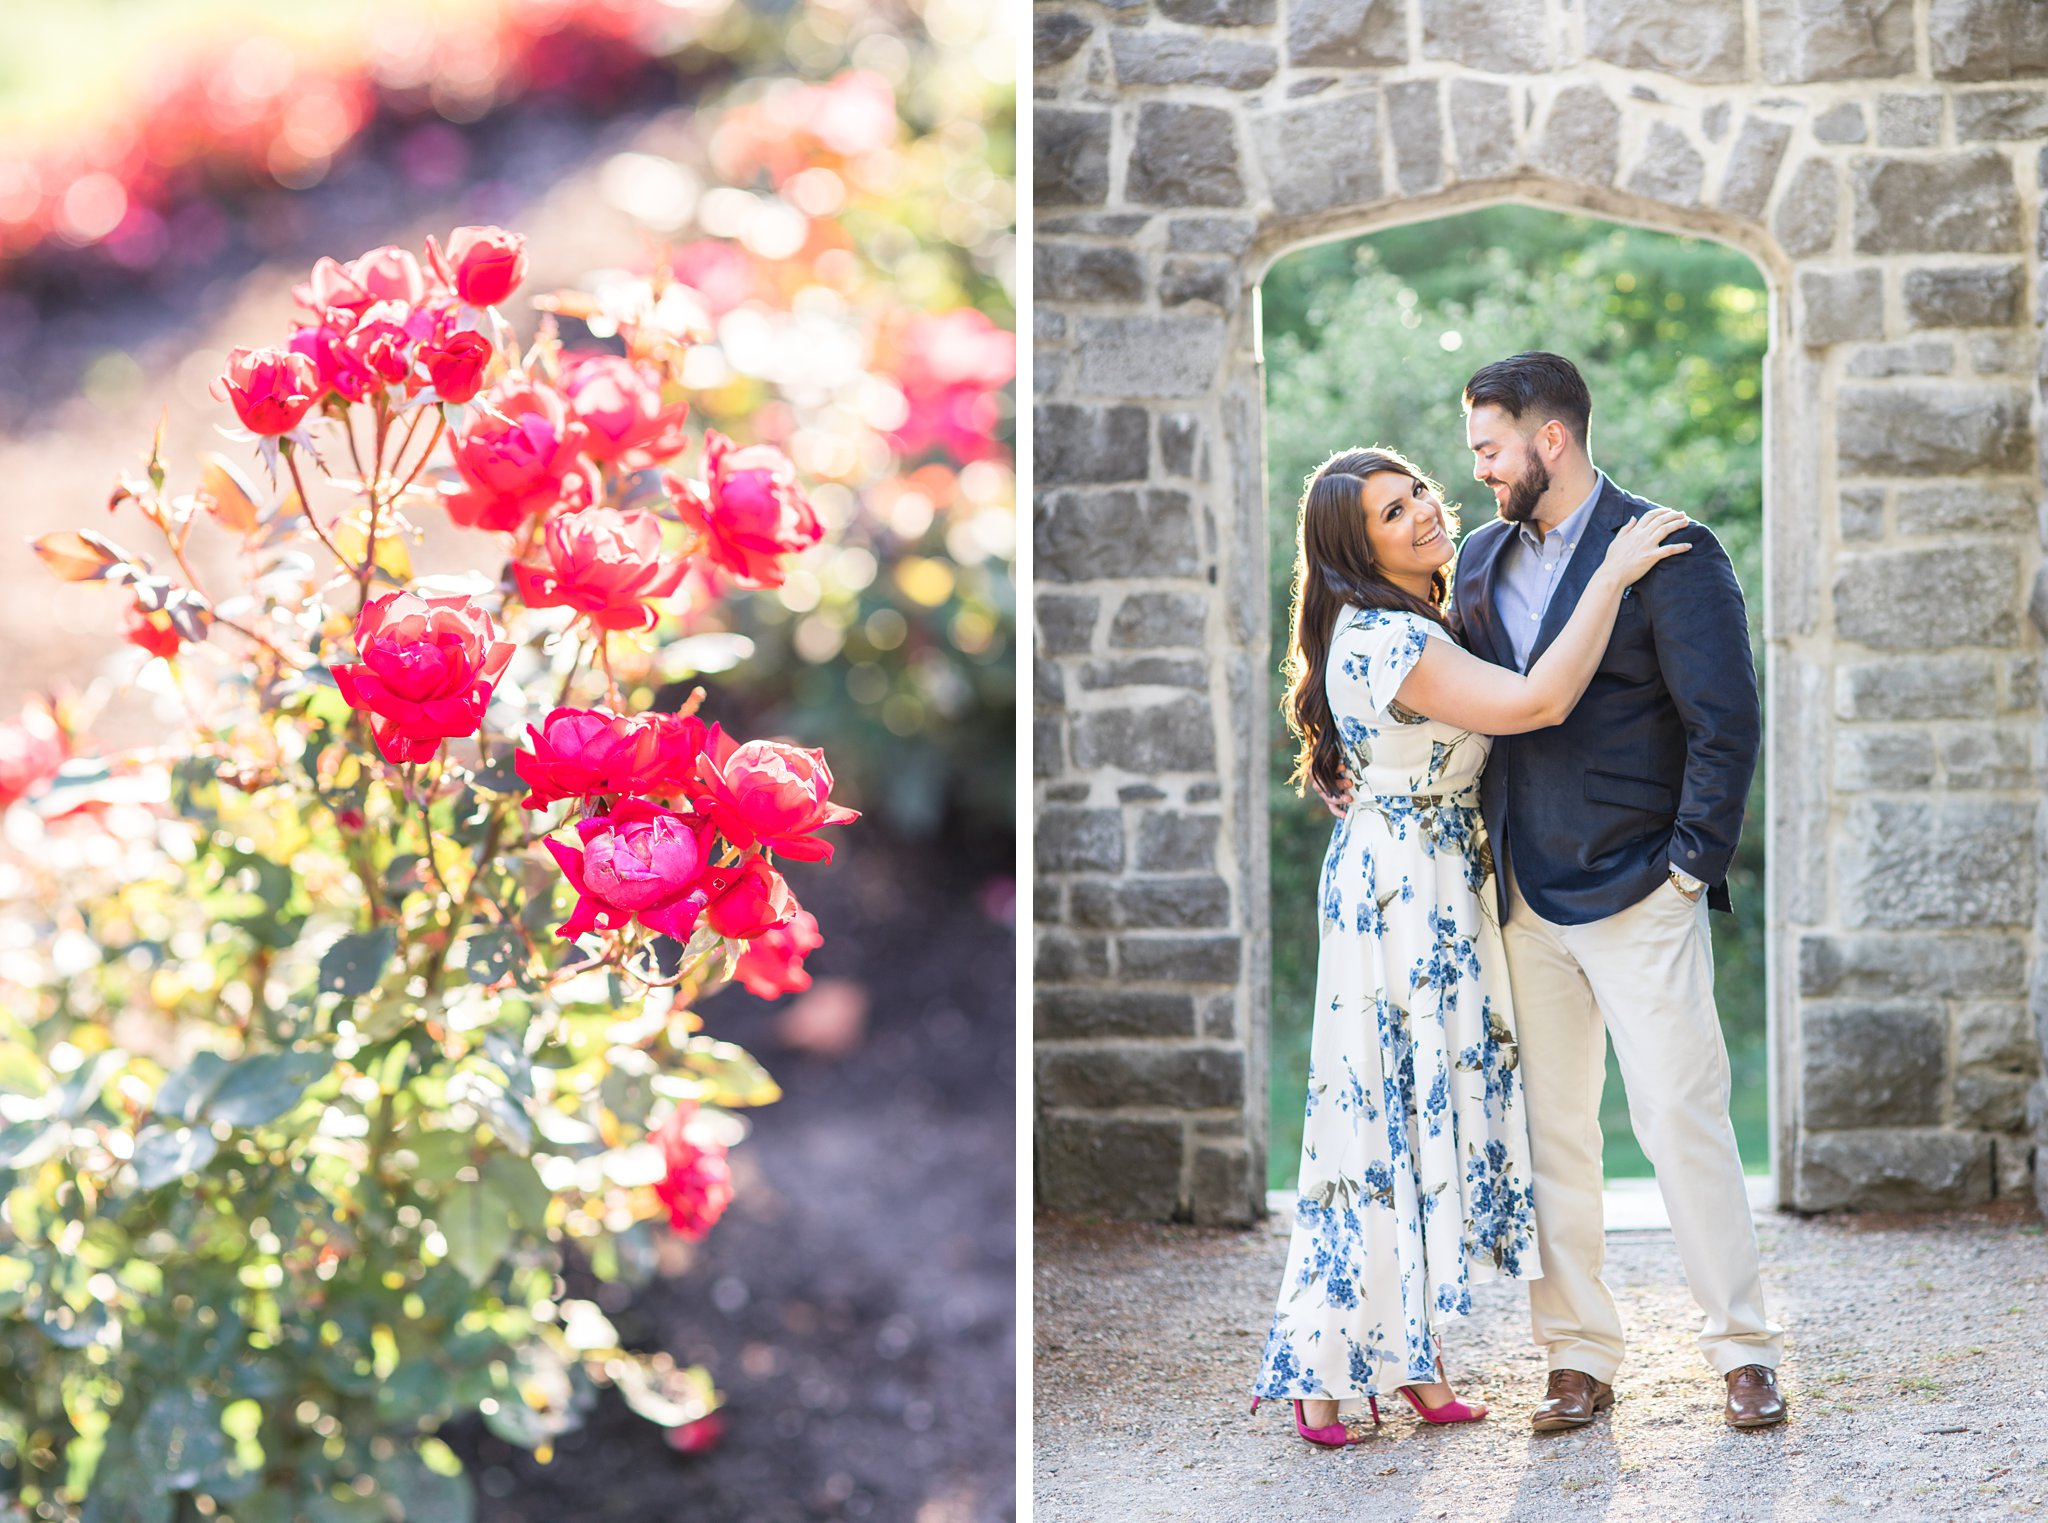 Red roses, English garden, Mackenzie King Estate Engagement Photos by Amy Pinder Photography